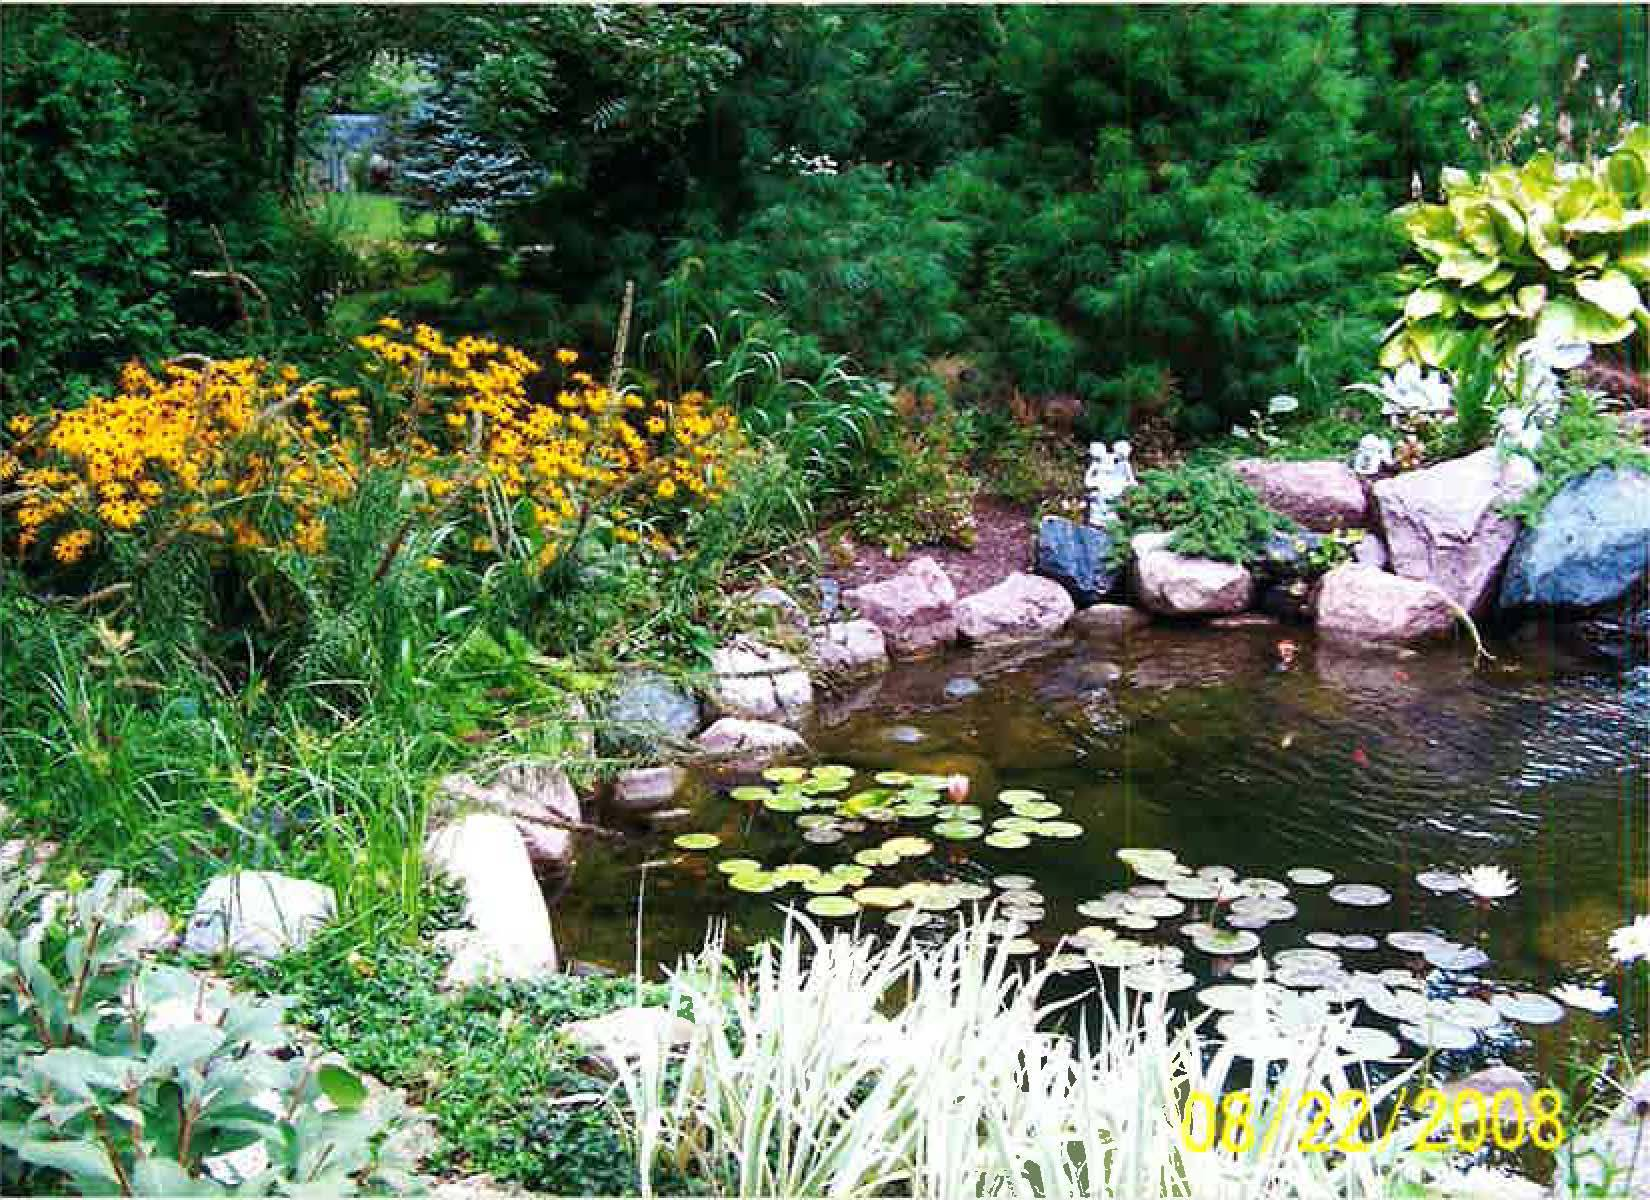 Zito Garden, one of the 6 private gardens featured at the Glen Ellyn Garden WalkArlene Zito